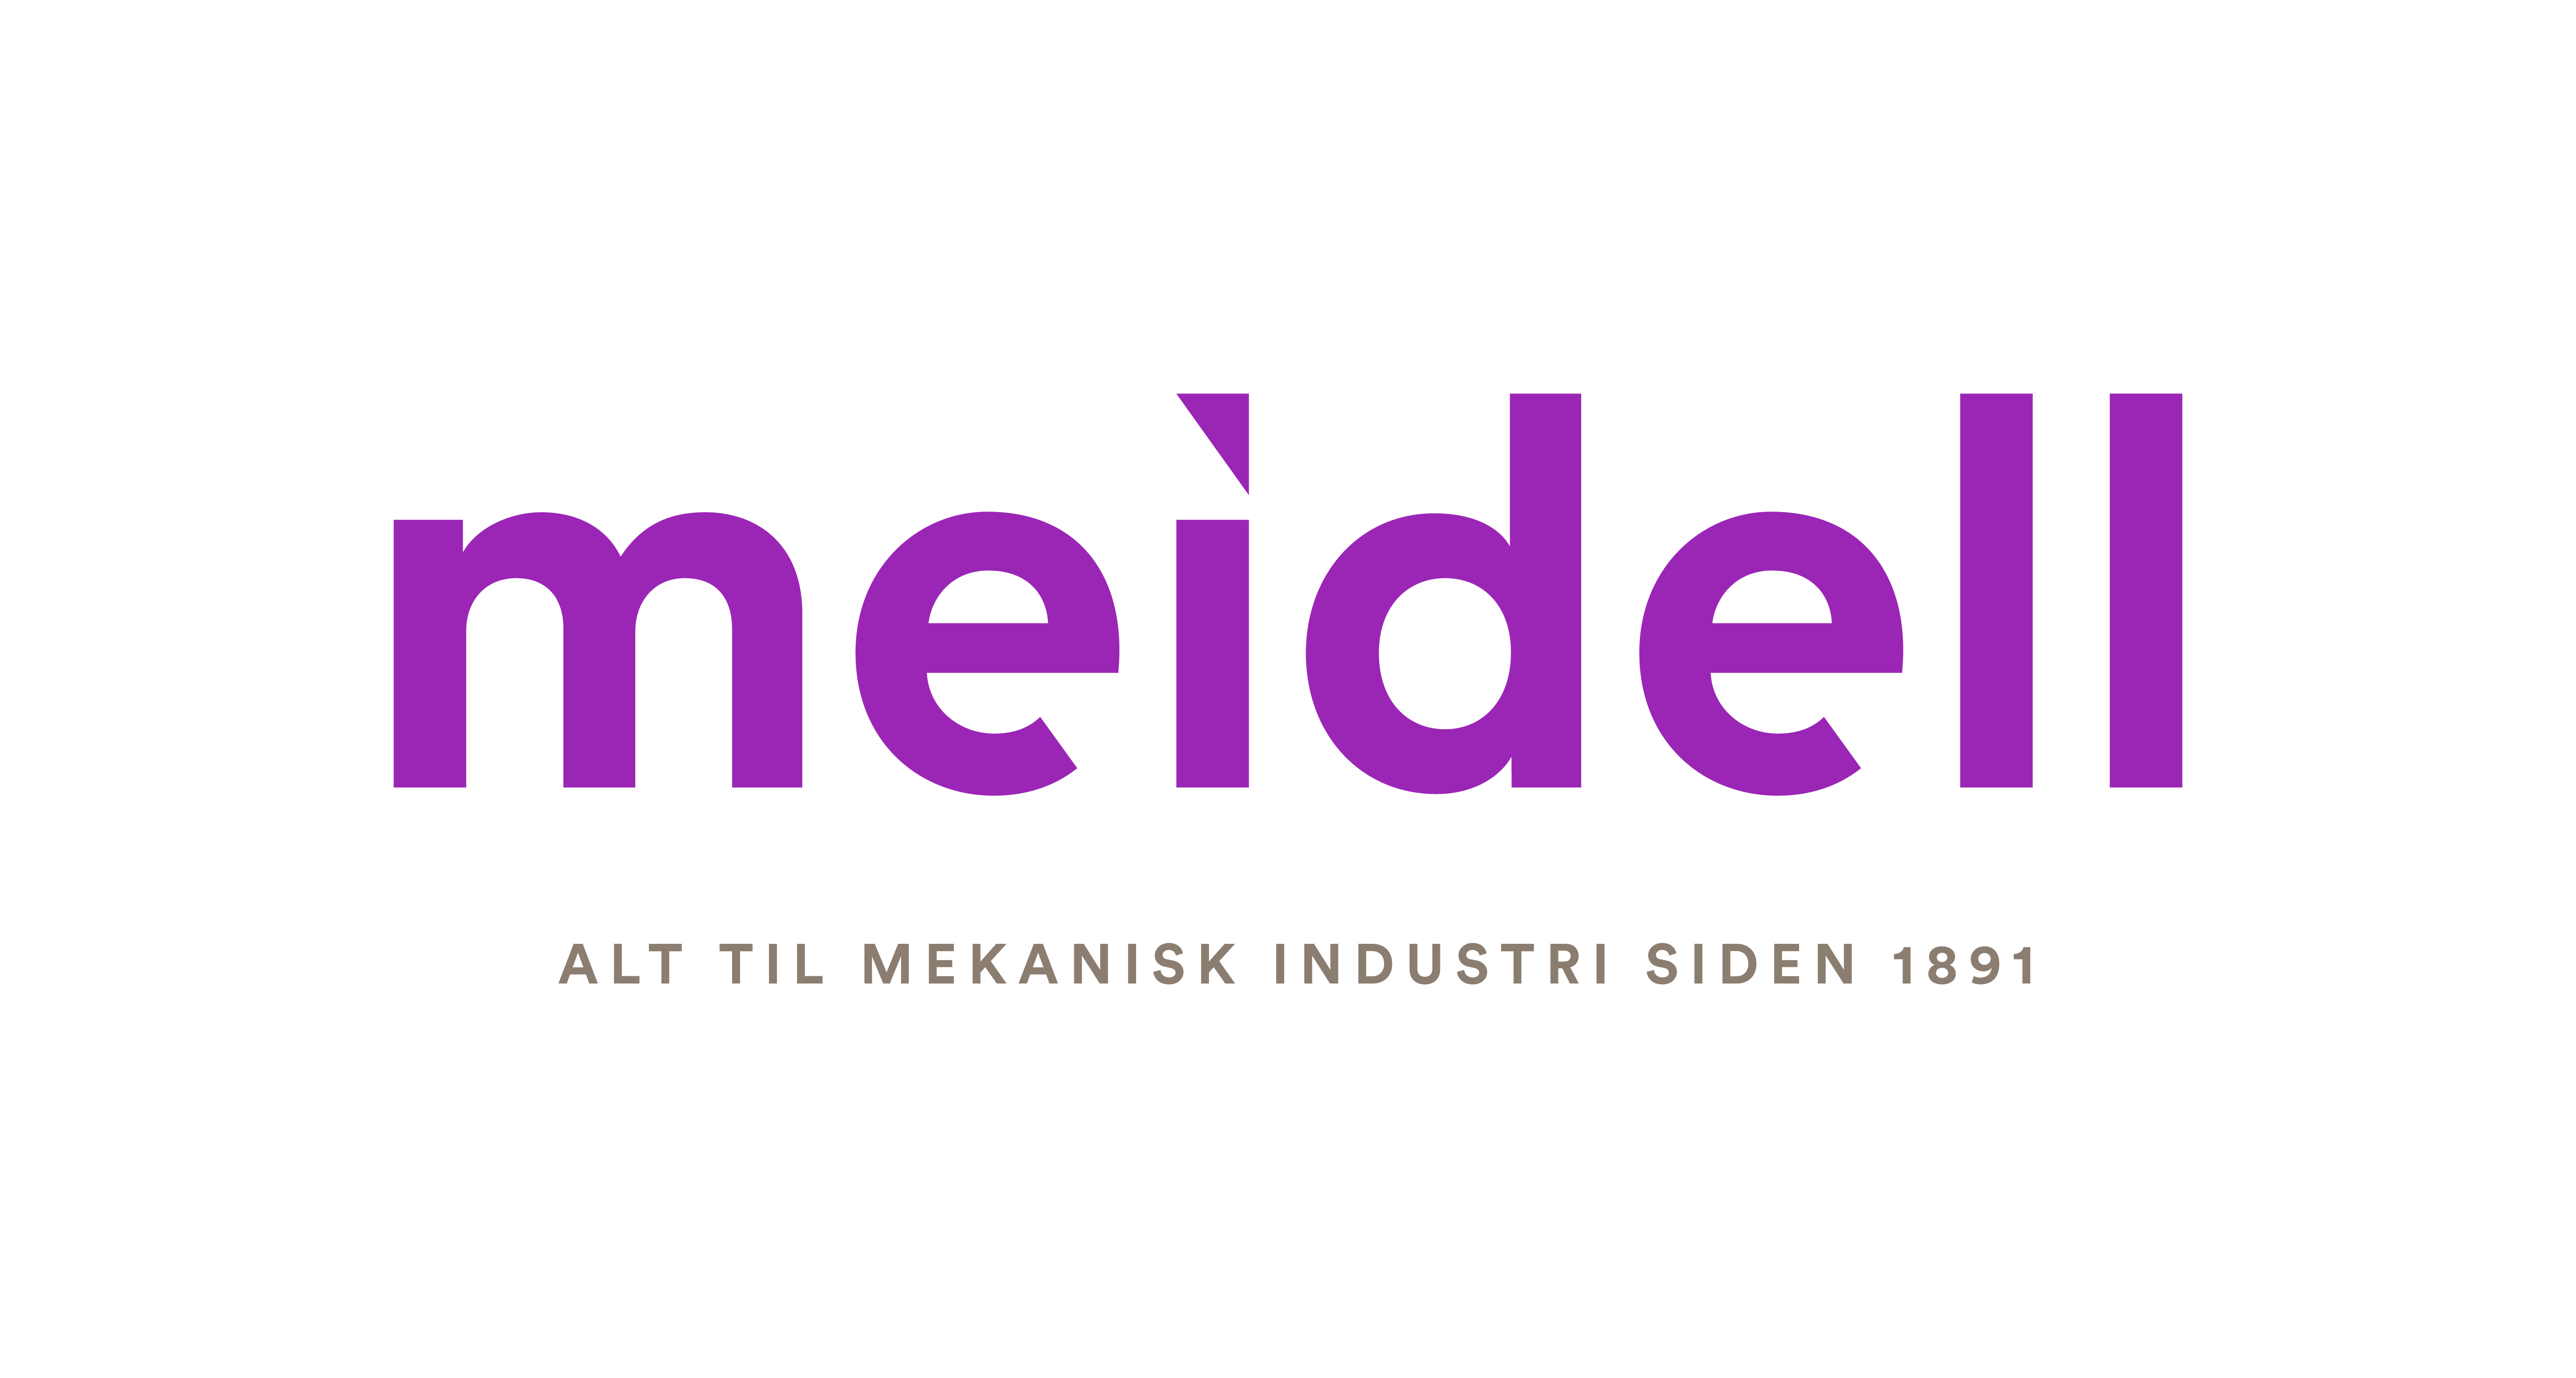 P. Meidell AS